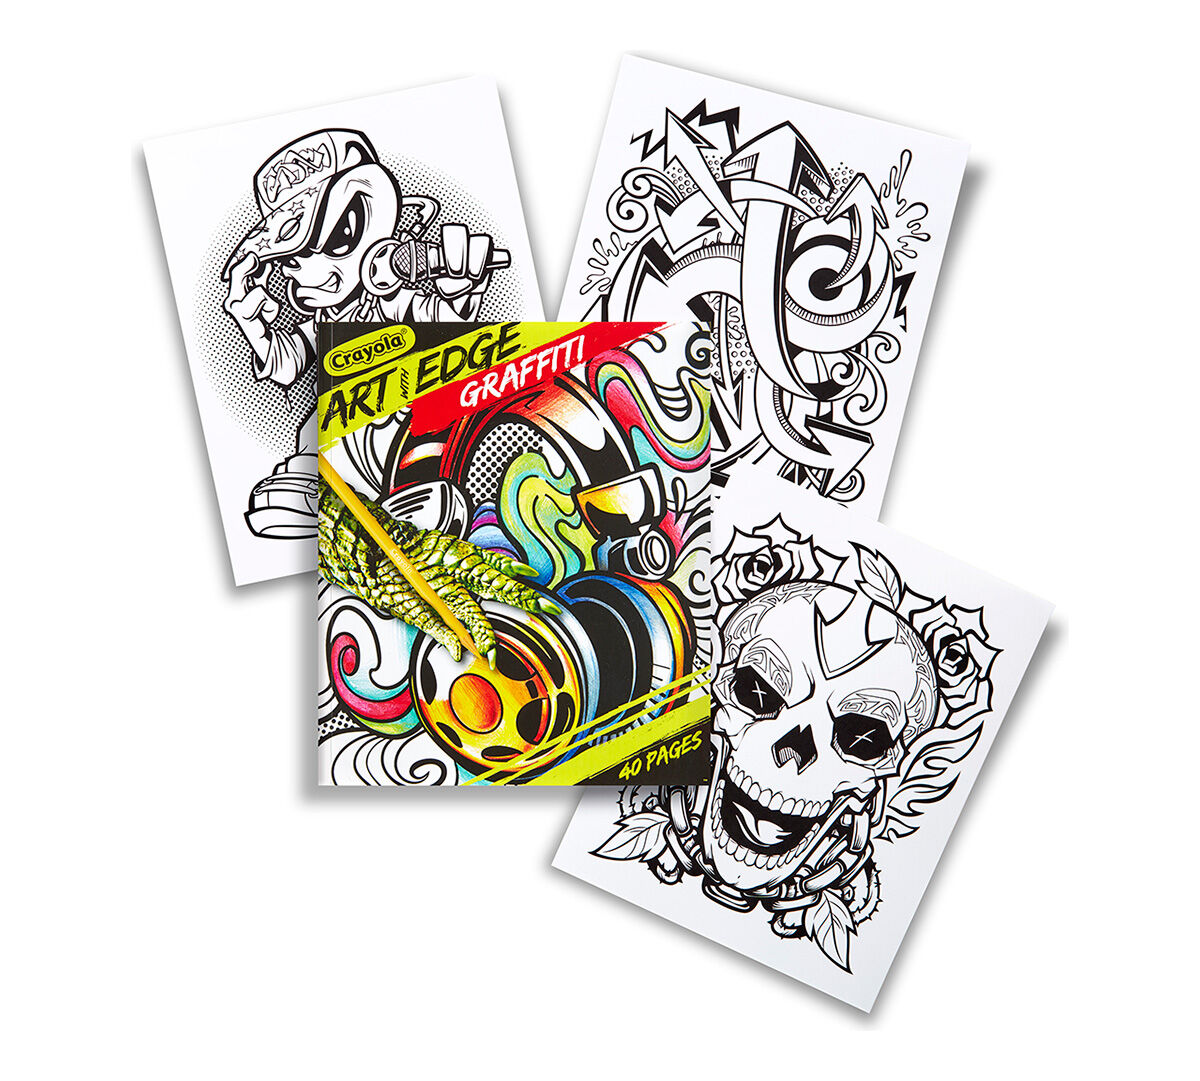 Coloring book color of art - Art With Edge Graffiti